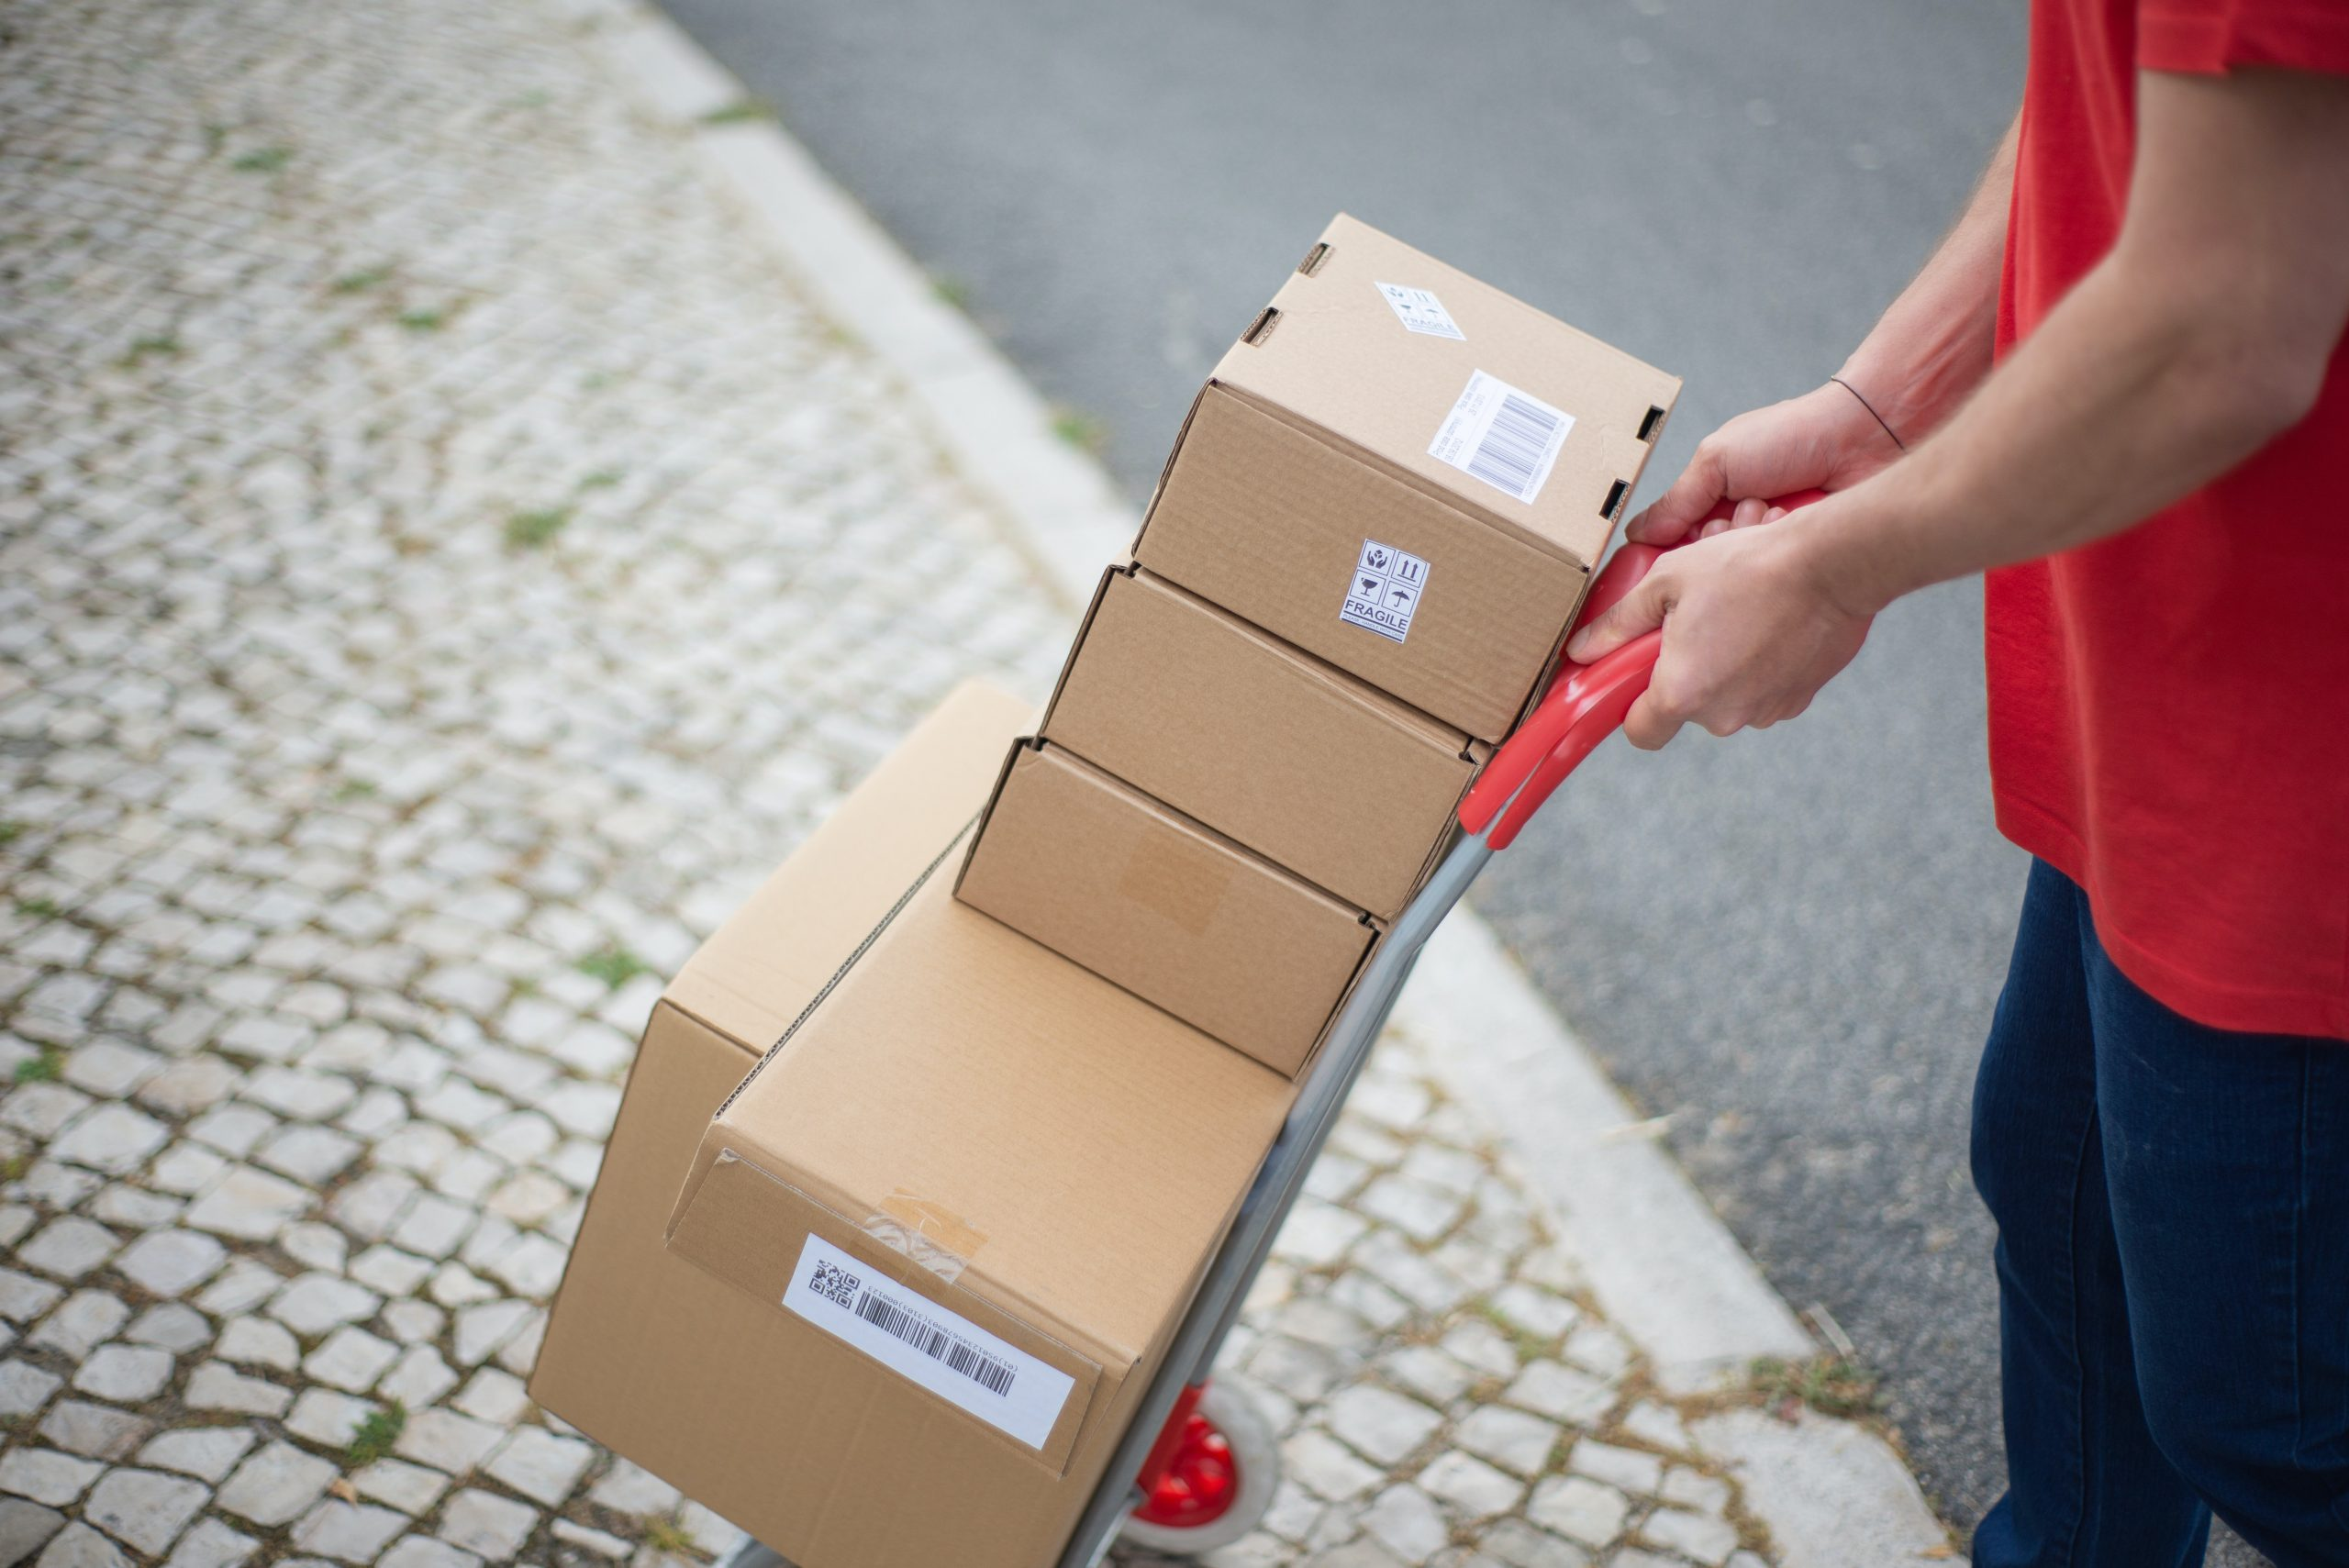 A delivery guy pushing a dolly with parcels